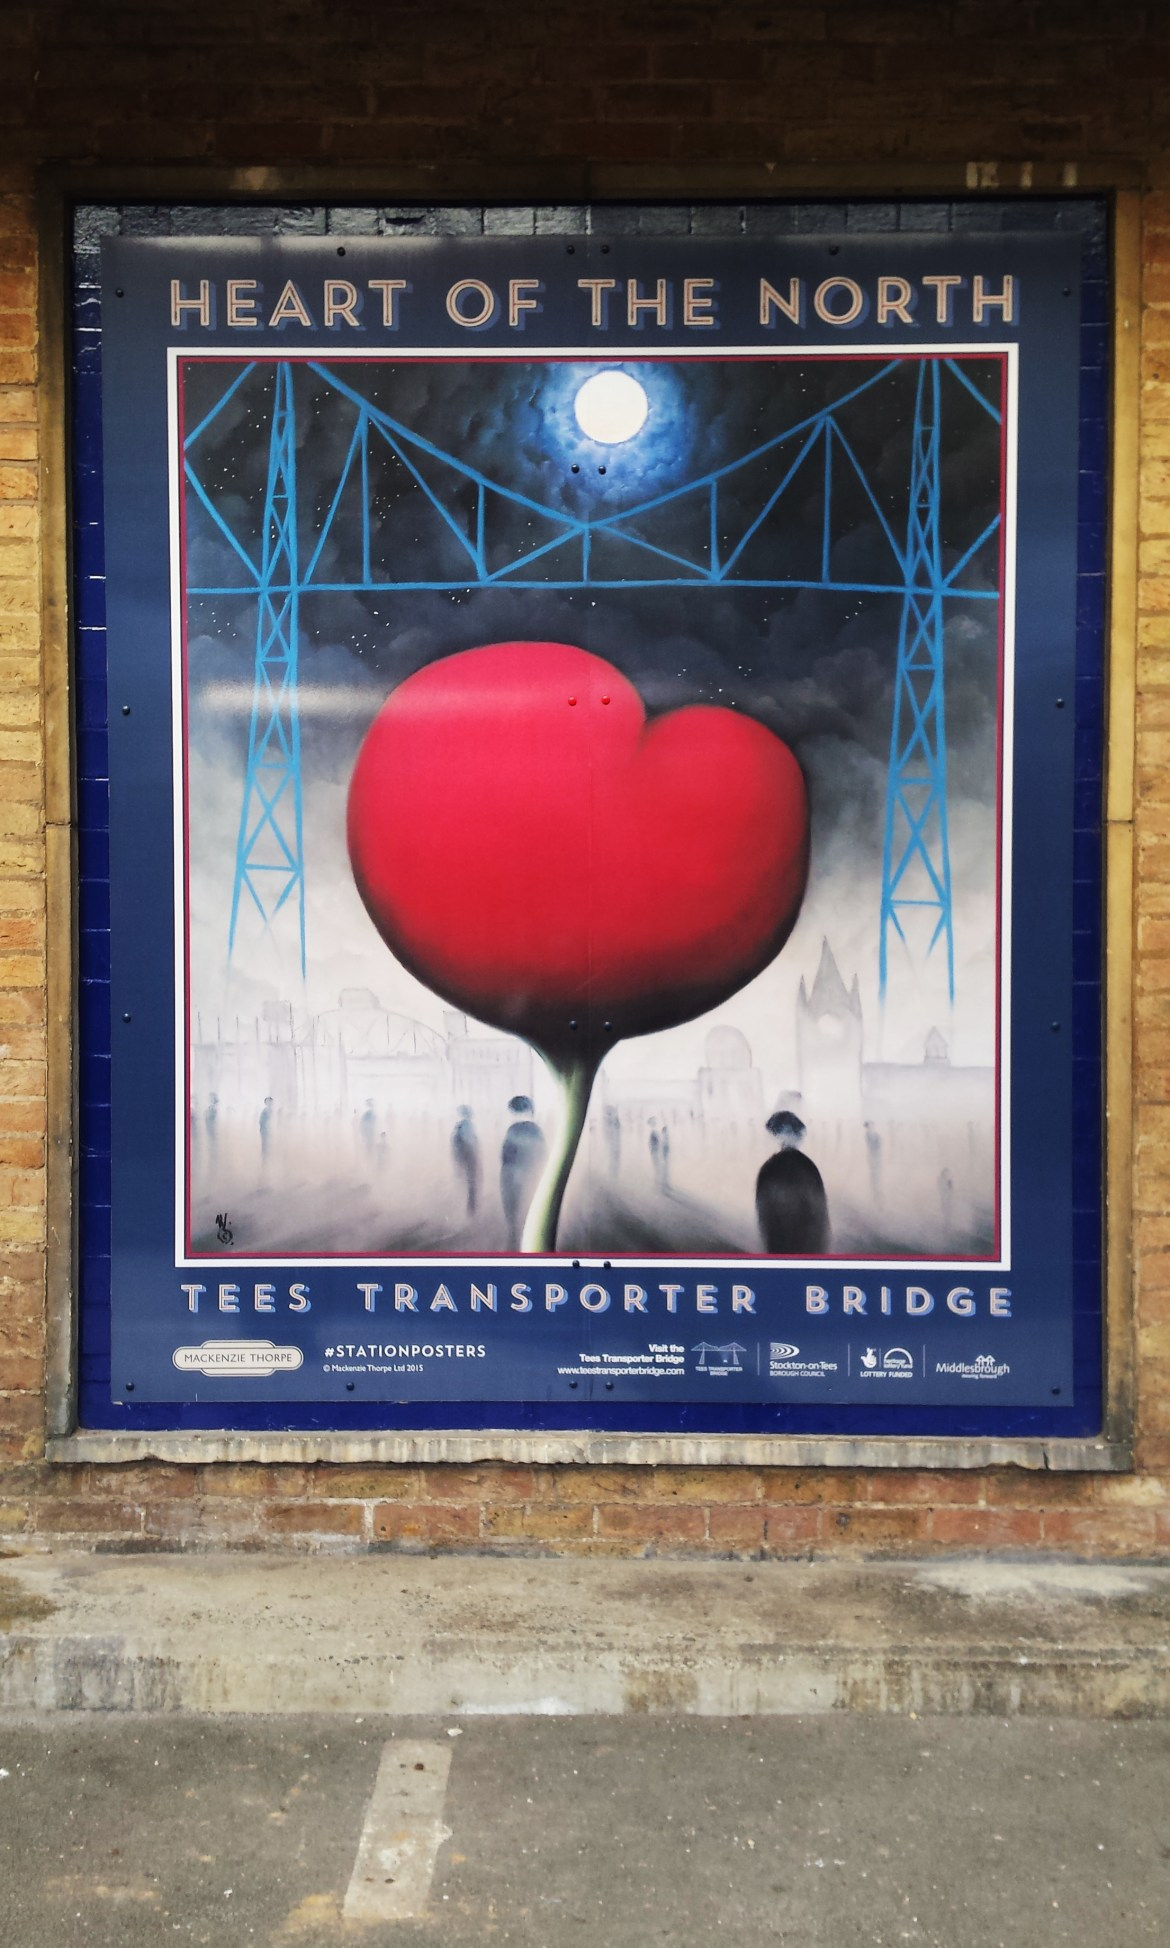 Modern Railway Poster titled 'Heart of the North' by Mackenzie Thorpe which is on Display at Middlesbrough Railway Station